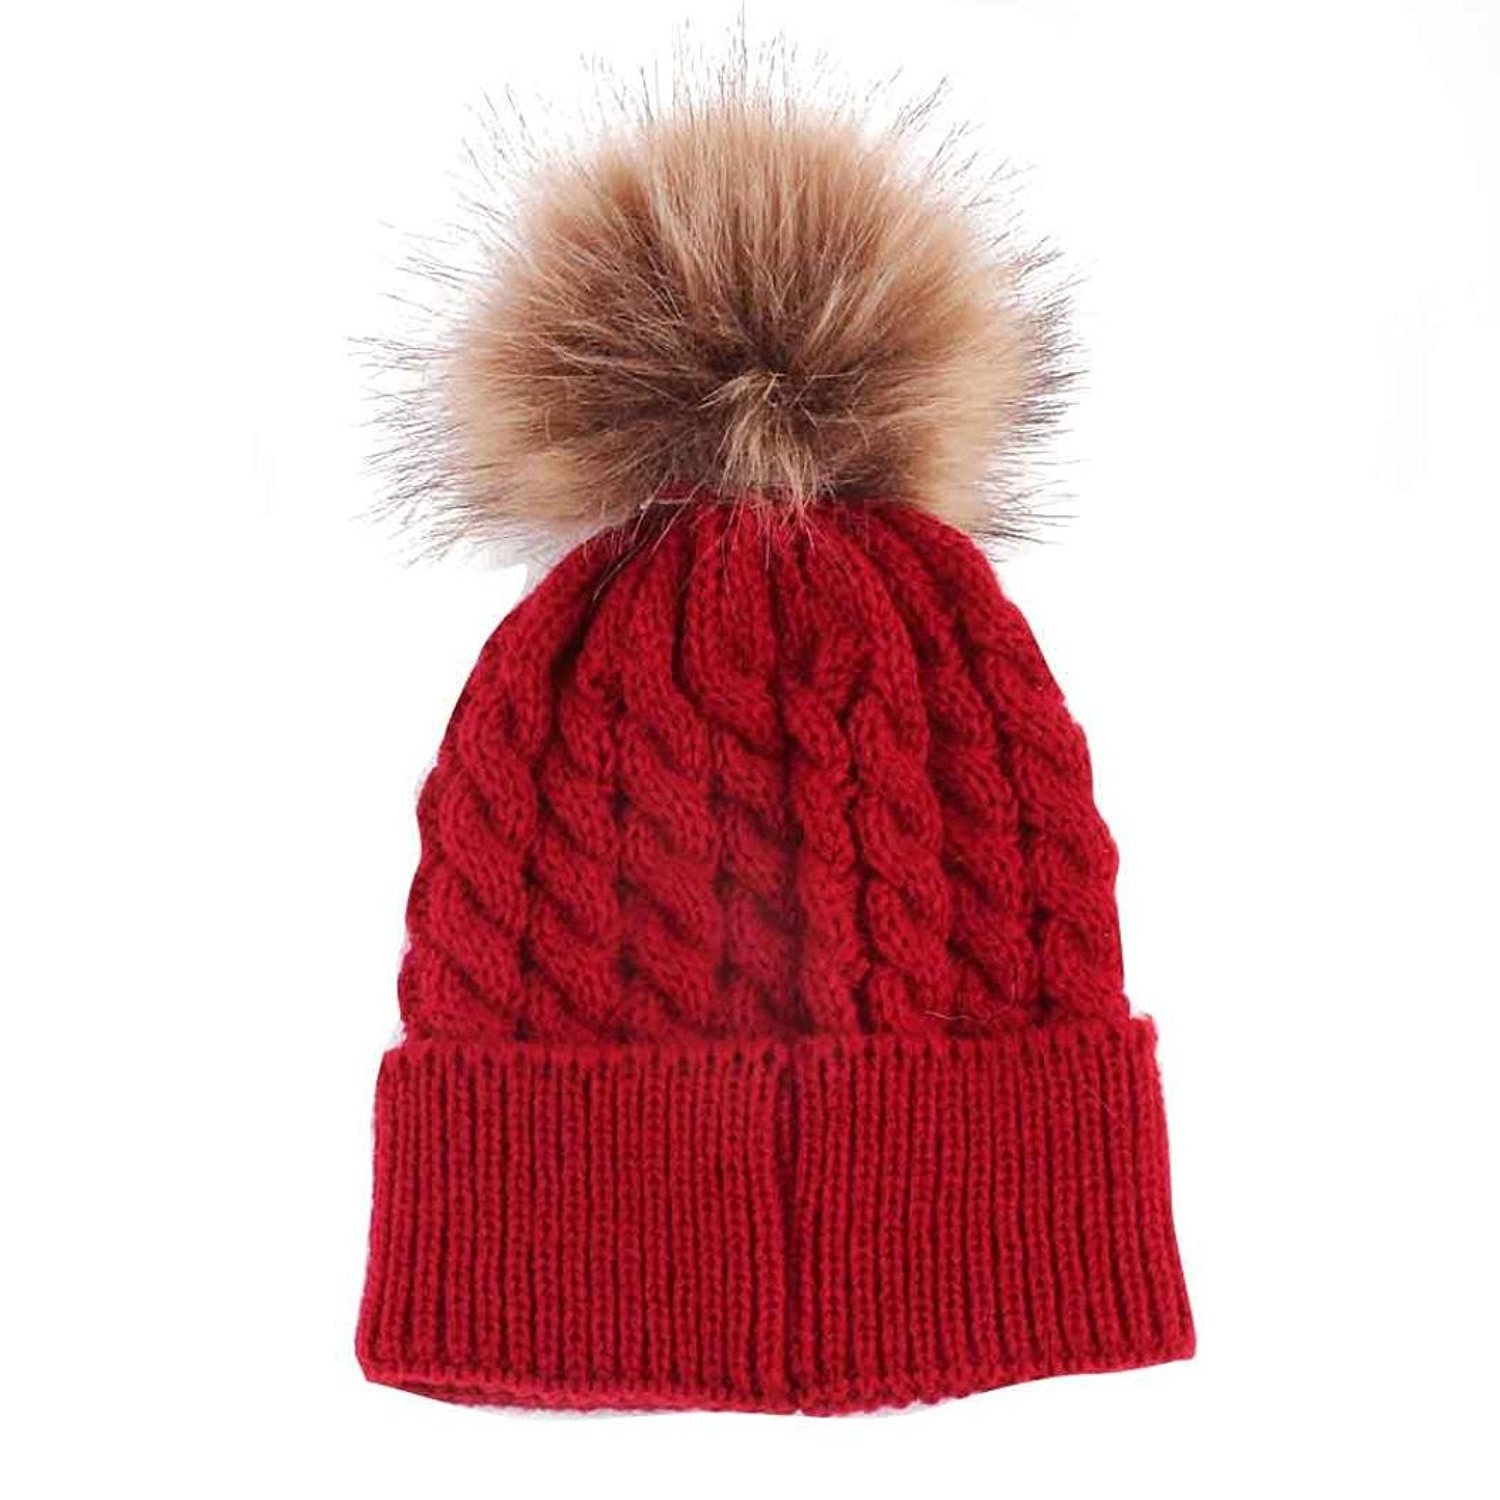 Bluelans® Newborn Cute Winter Kids Baby Hats Knitted Hemming Skullies Beanies Hat with Large Fur Pom Pom Cap